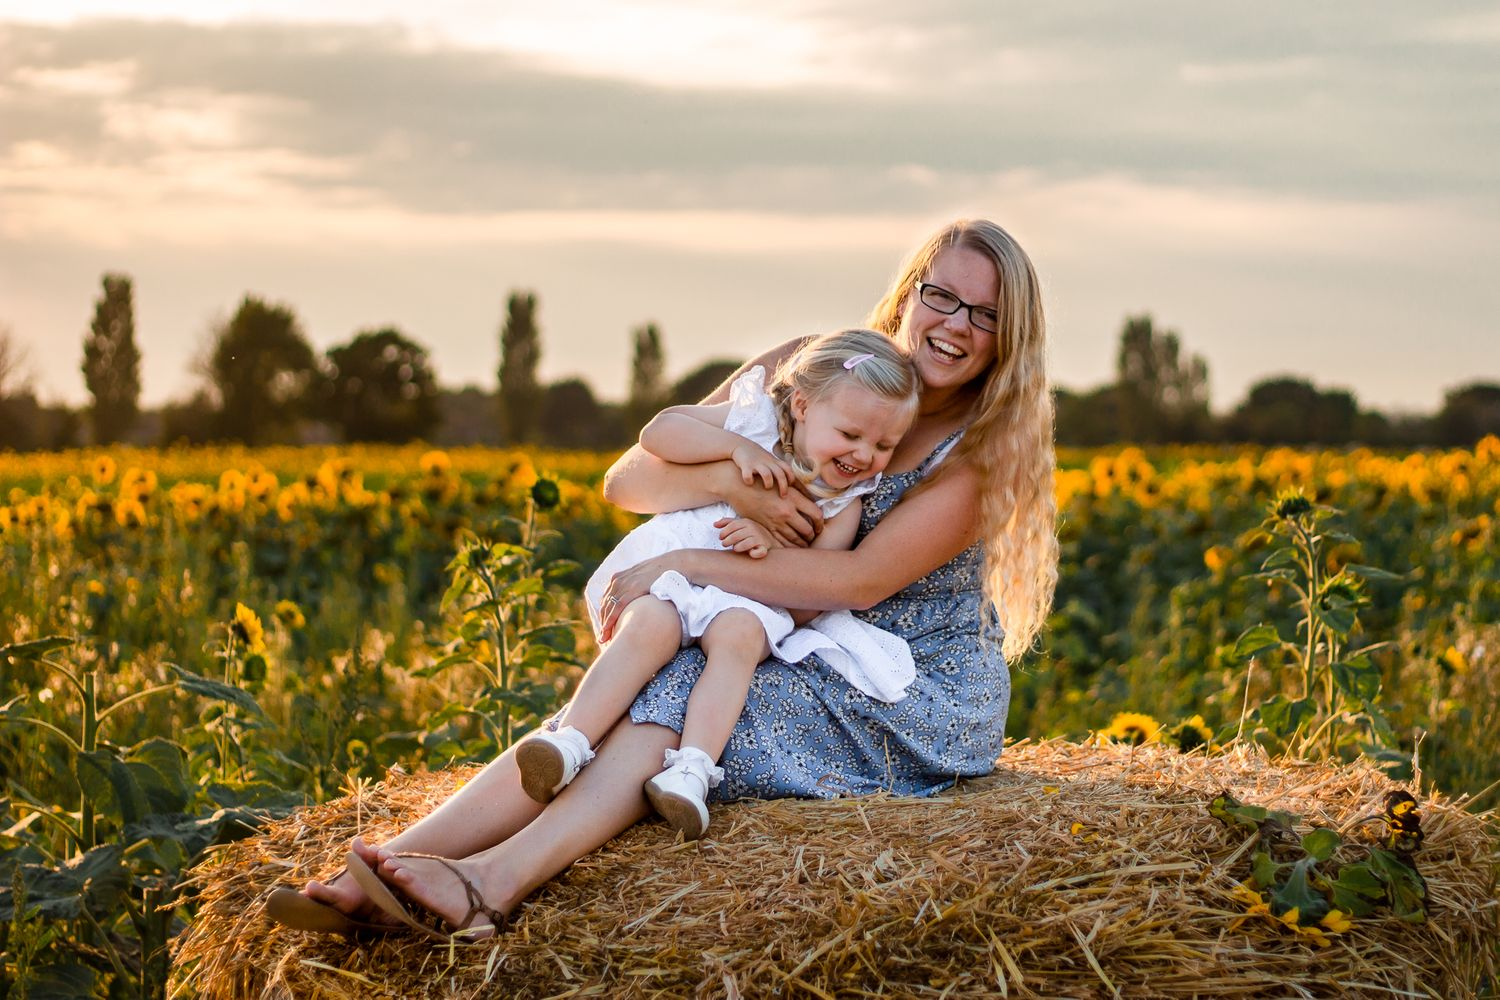 In a sunflower field on Hayling Island at sunset a Mum and her 2 year old daughter sit on a haybale laughing.